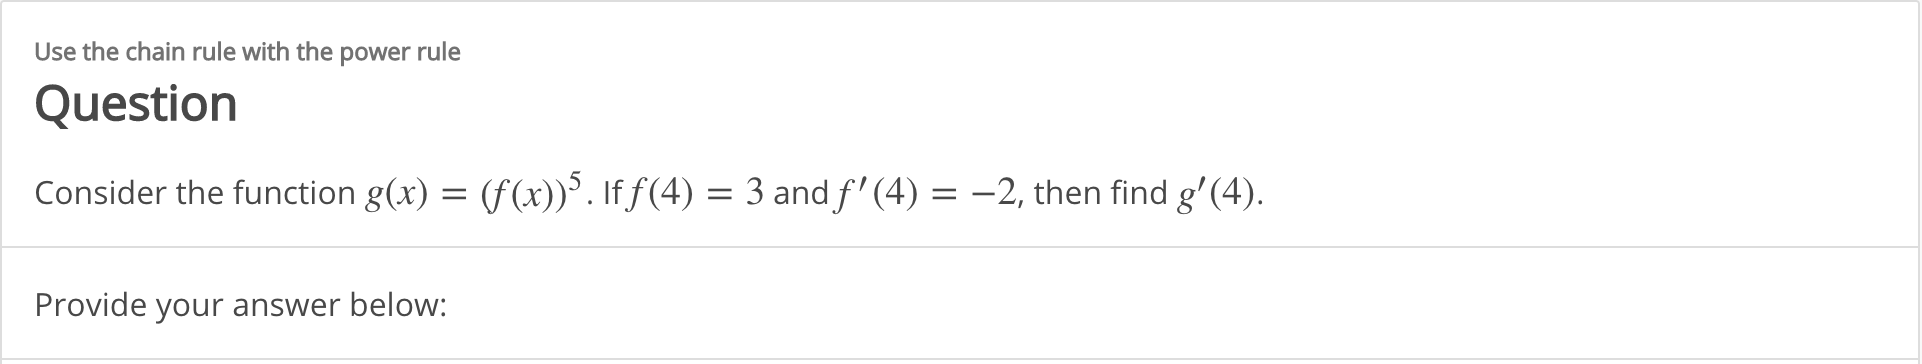 Use the chain rule with the power rule Question Consider the function g(x) = (f(x)). If f(4) = 3 and f' (4) = -2, then find g'(4). Provide your answer below: